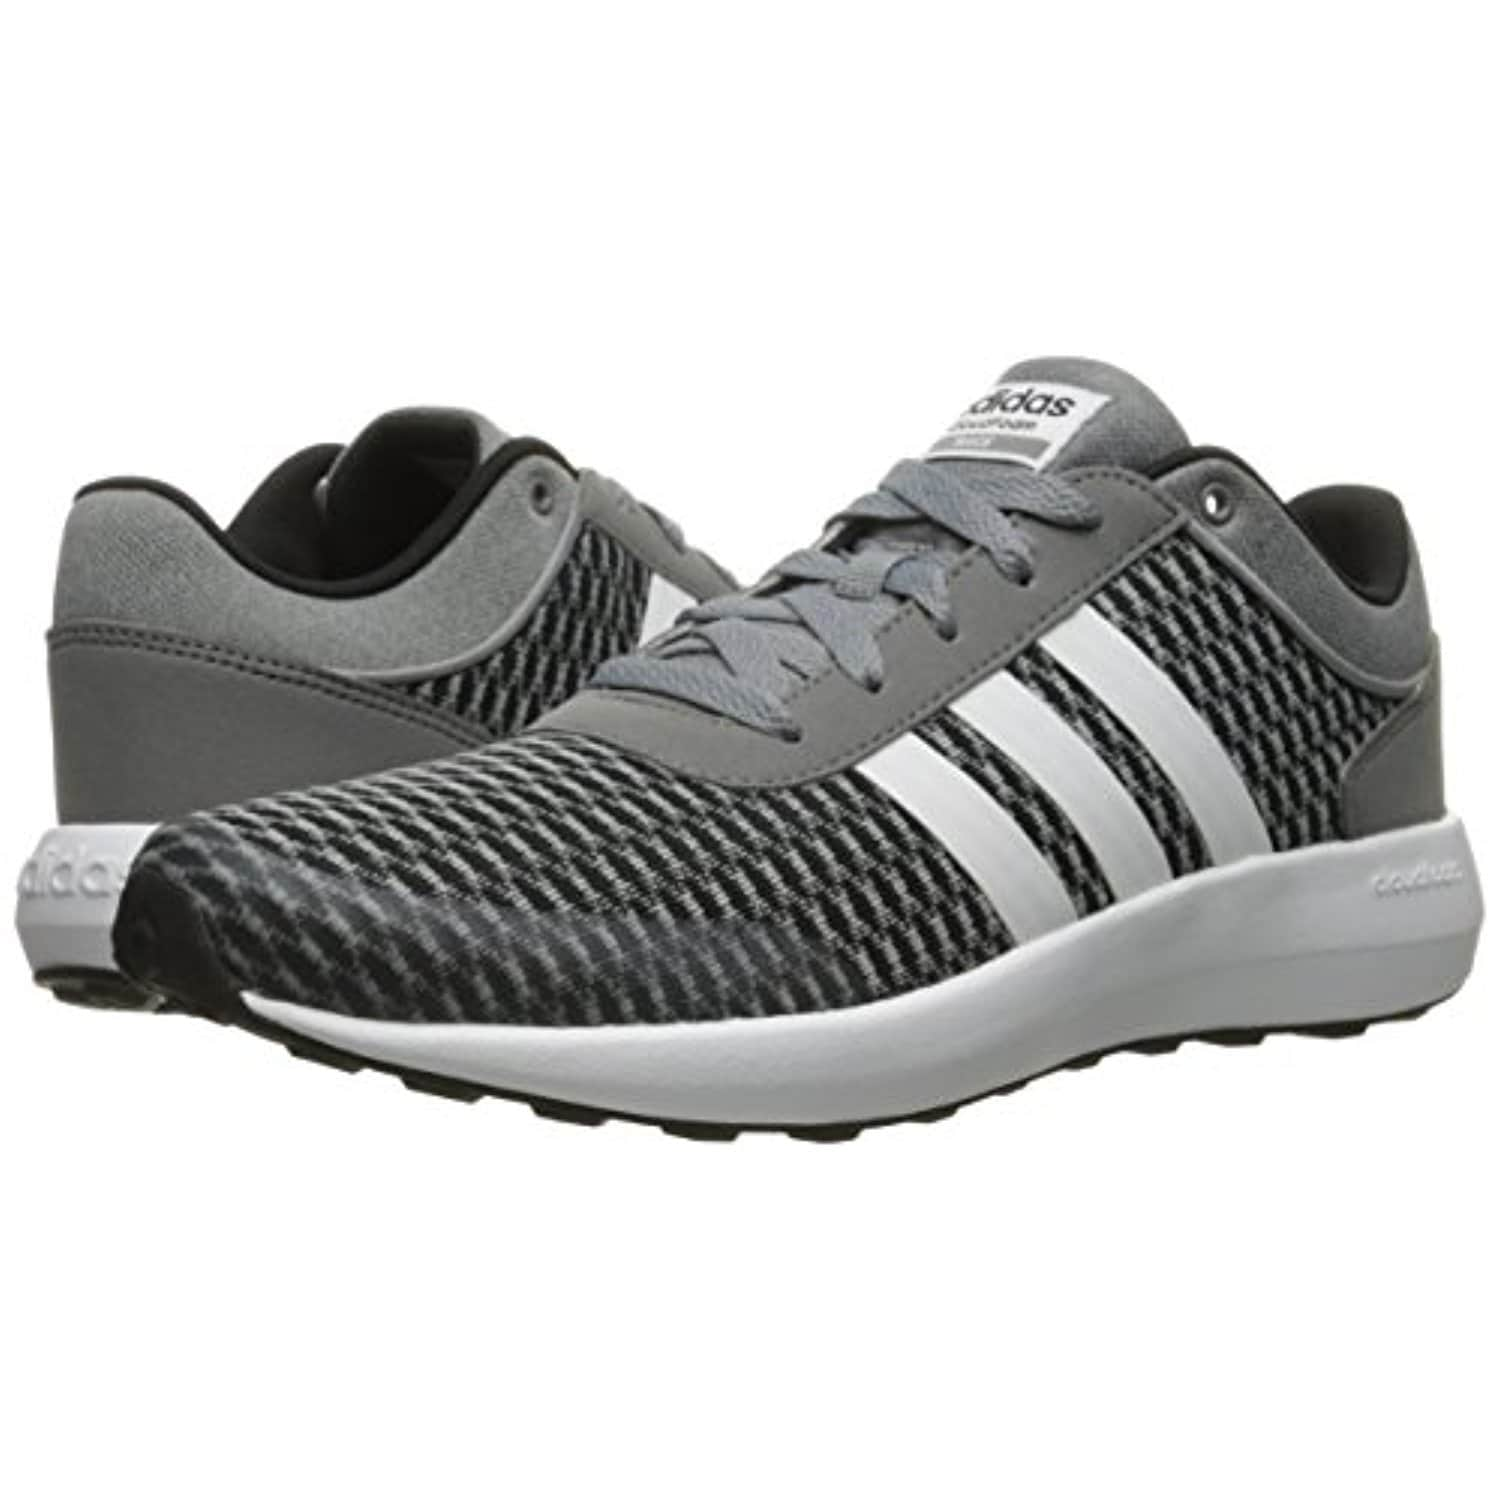 competitive price c5661 ca224 adidas NEO Men s Cloudfoam Race Running Shoe, Black White Tech Grey, 12 M  US - black white tech grey